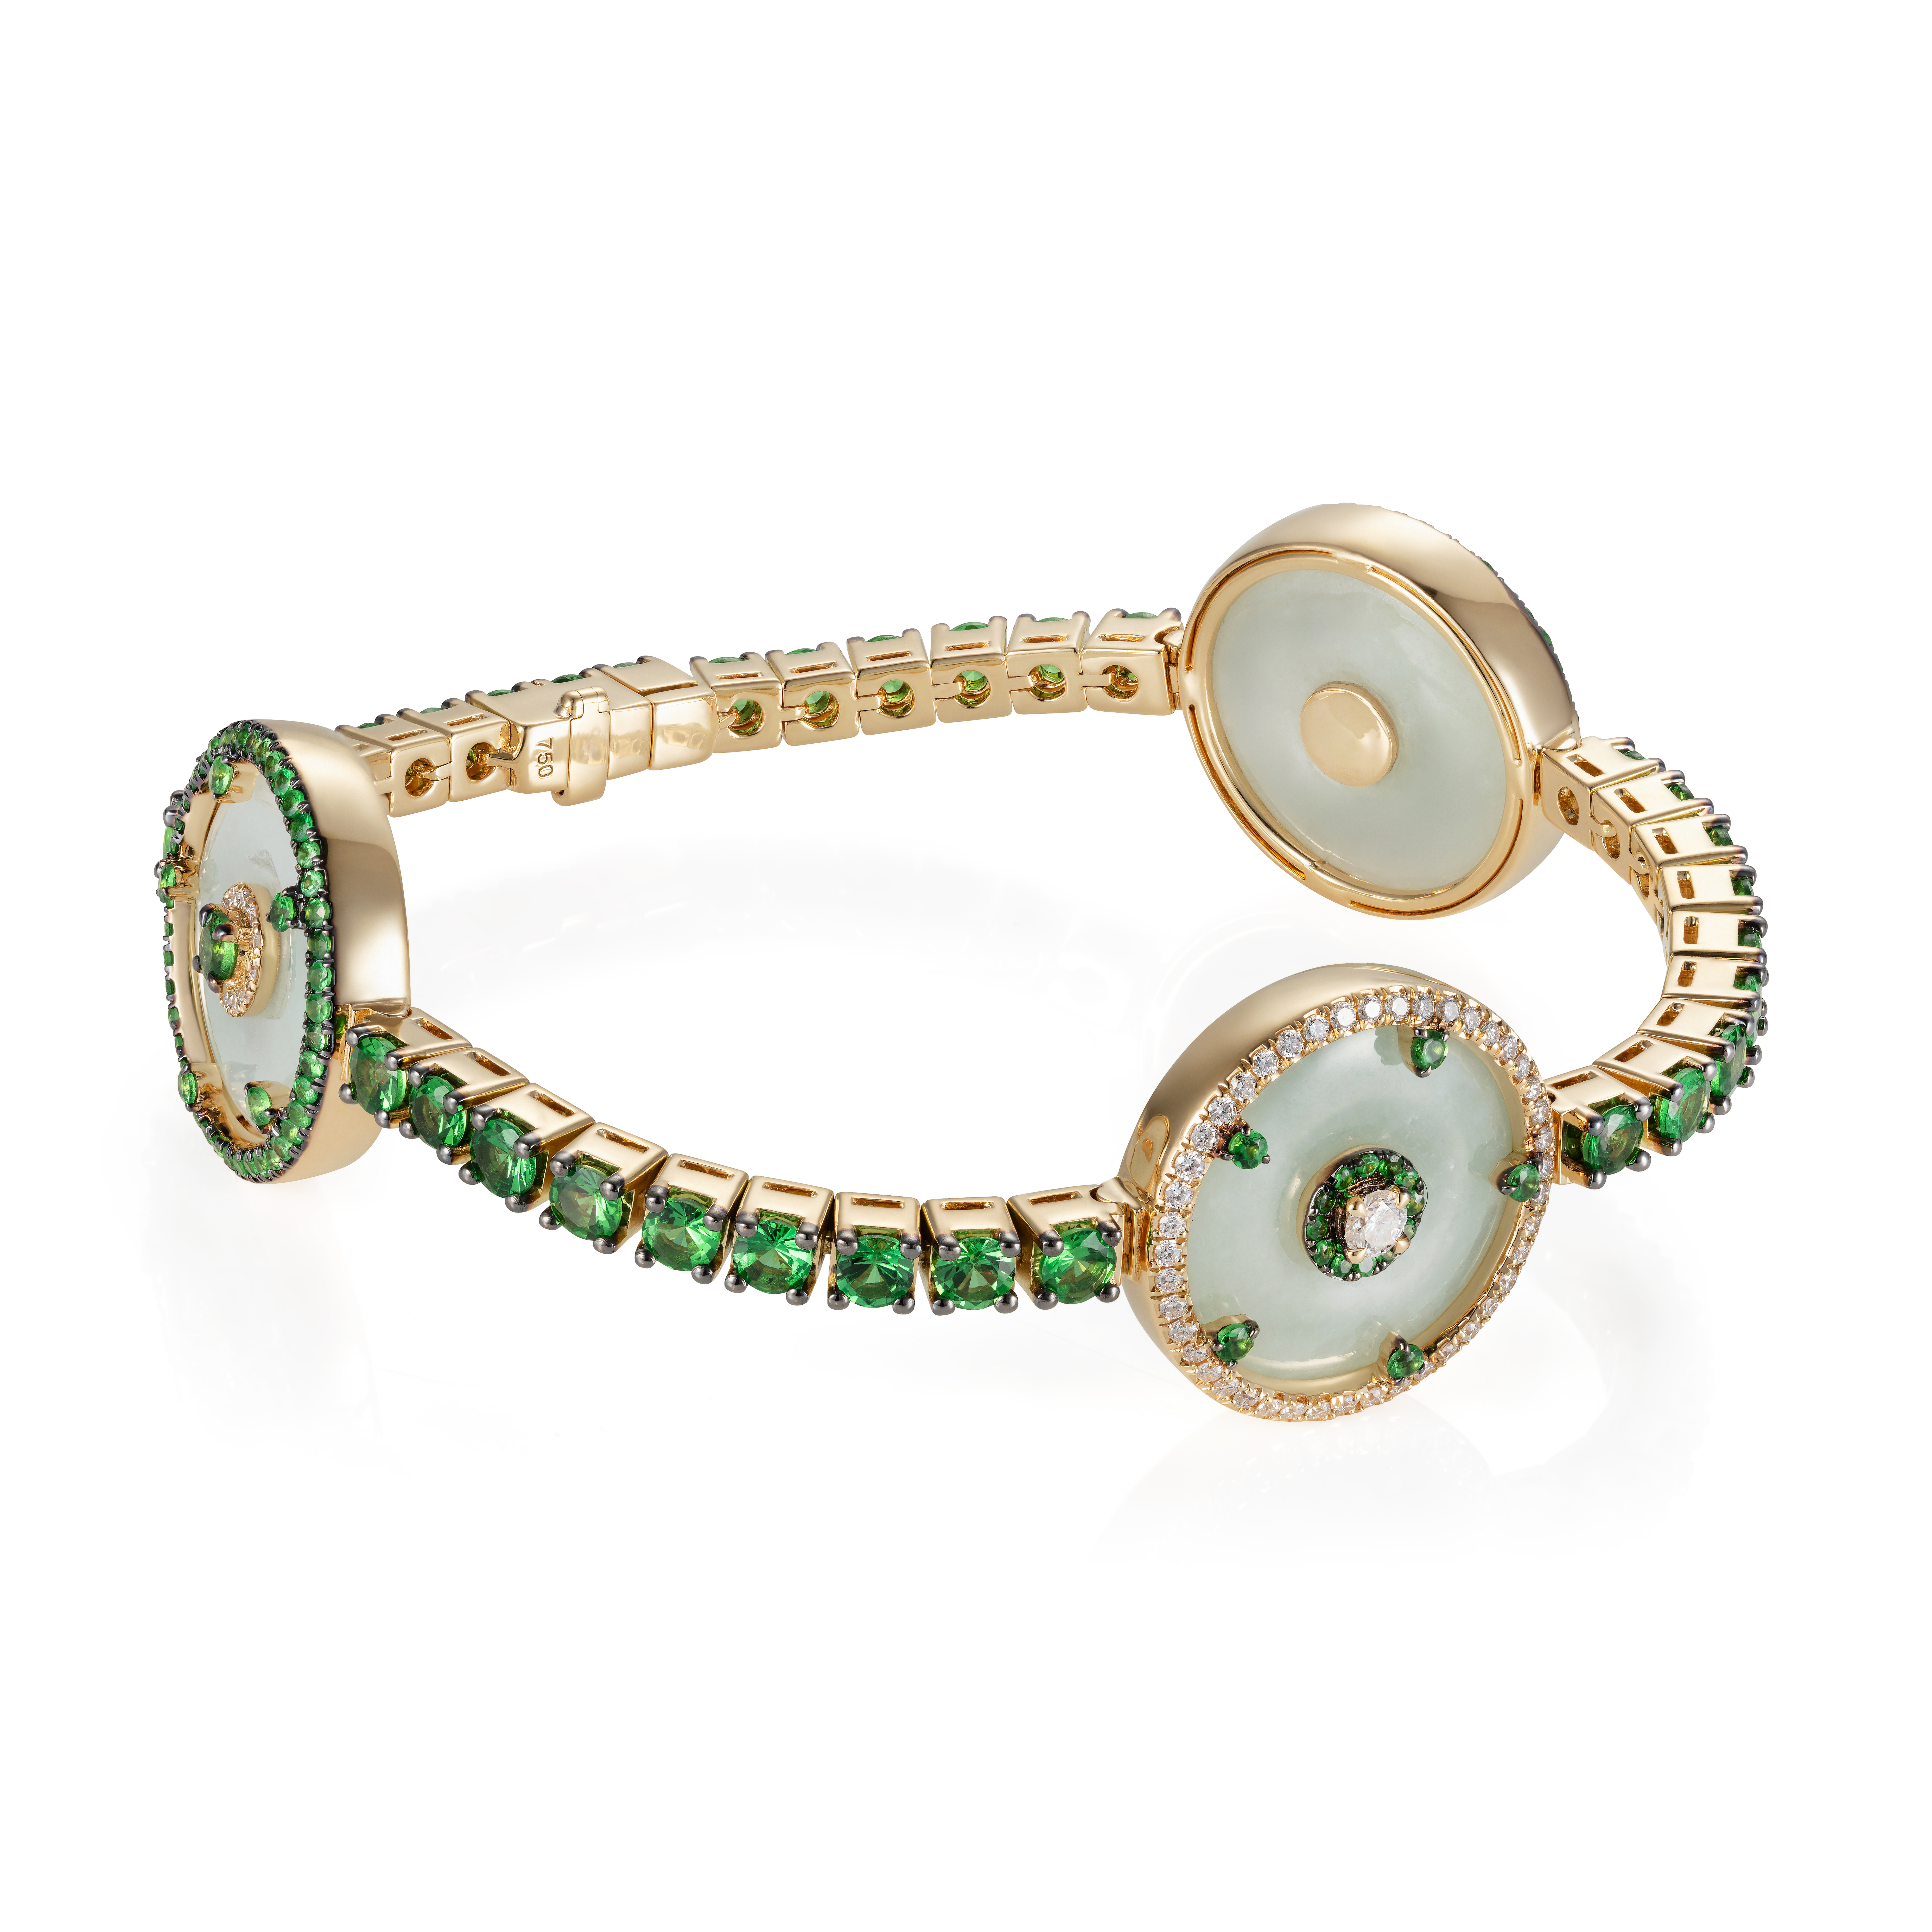 Celeste Tsavorite and 3 Jade Discs Bracelet by Nadine Aysoy on curated-crowd.com